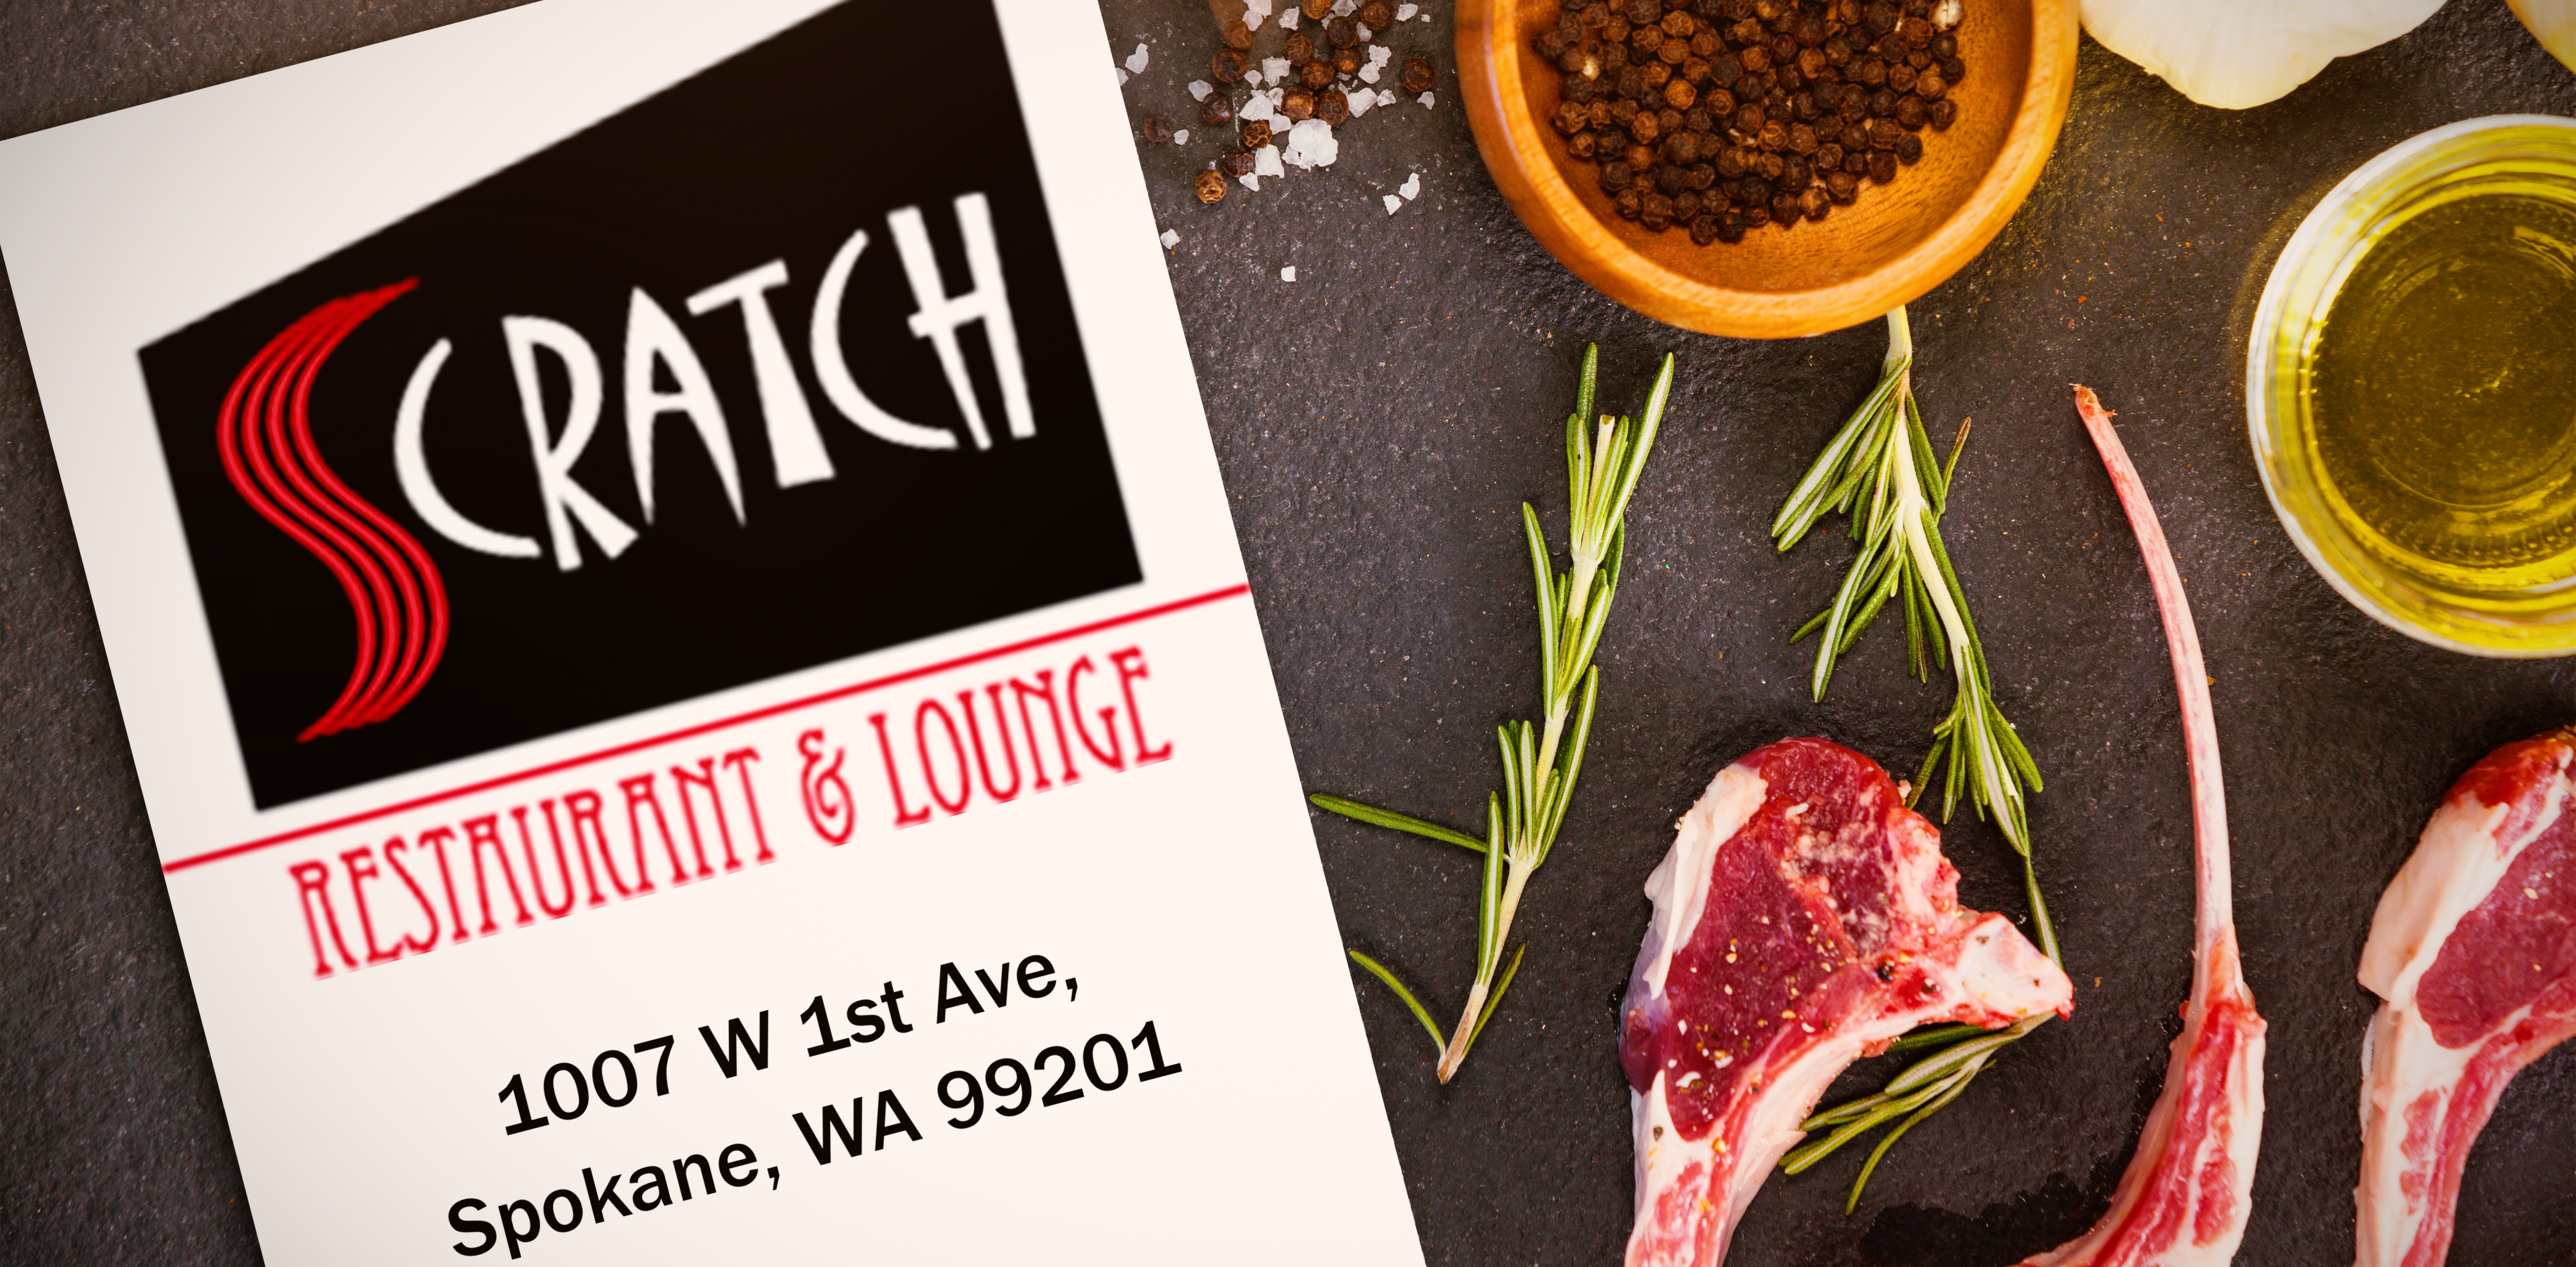 Scratch restaurant and Lounge